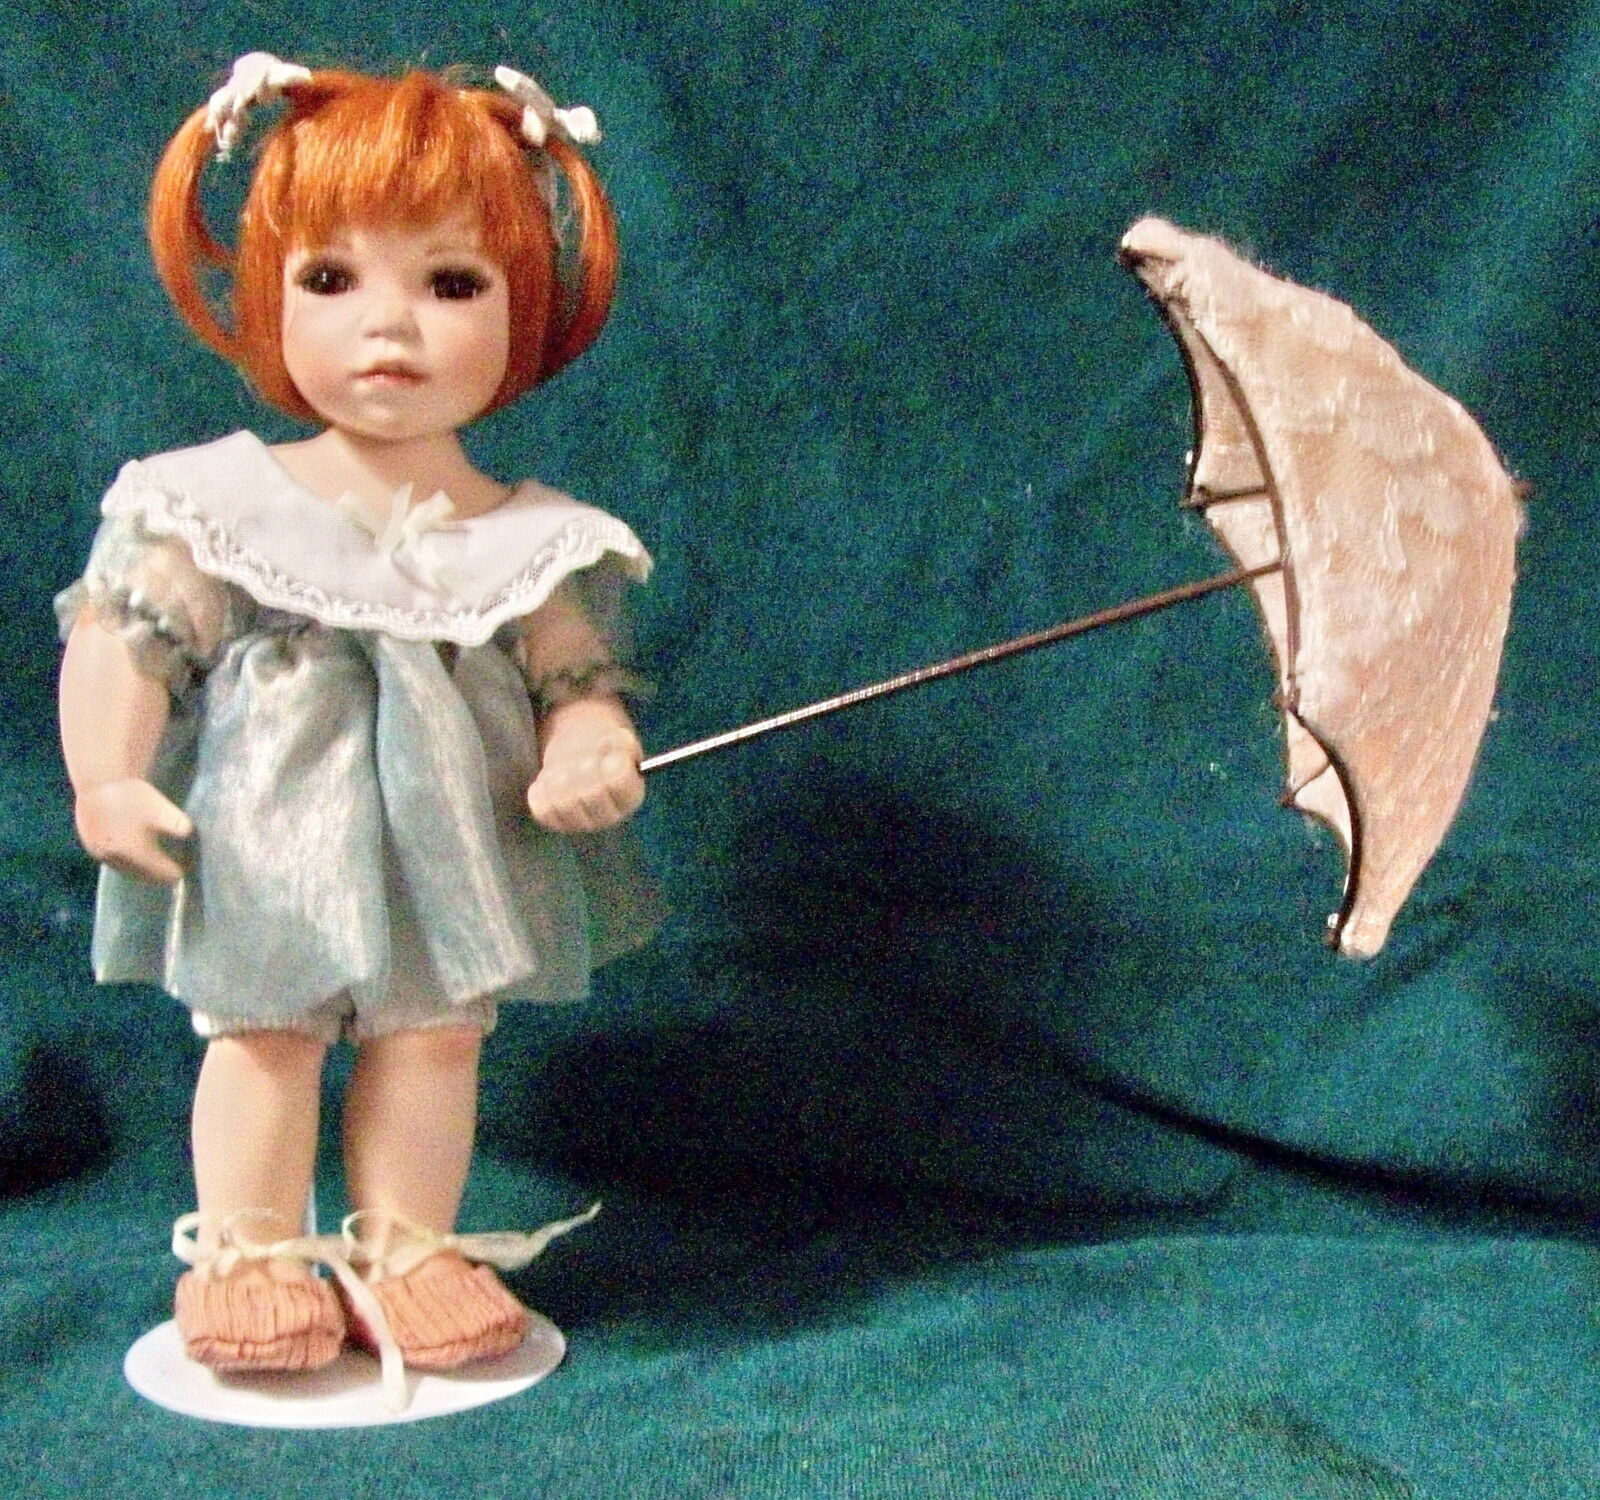 BRANDI w rosso HAIR Marronee Eyes, Carrying Umbrella J C Lee Doll by SEYMOUR MANN-NIB